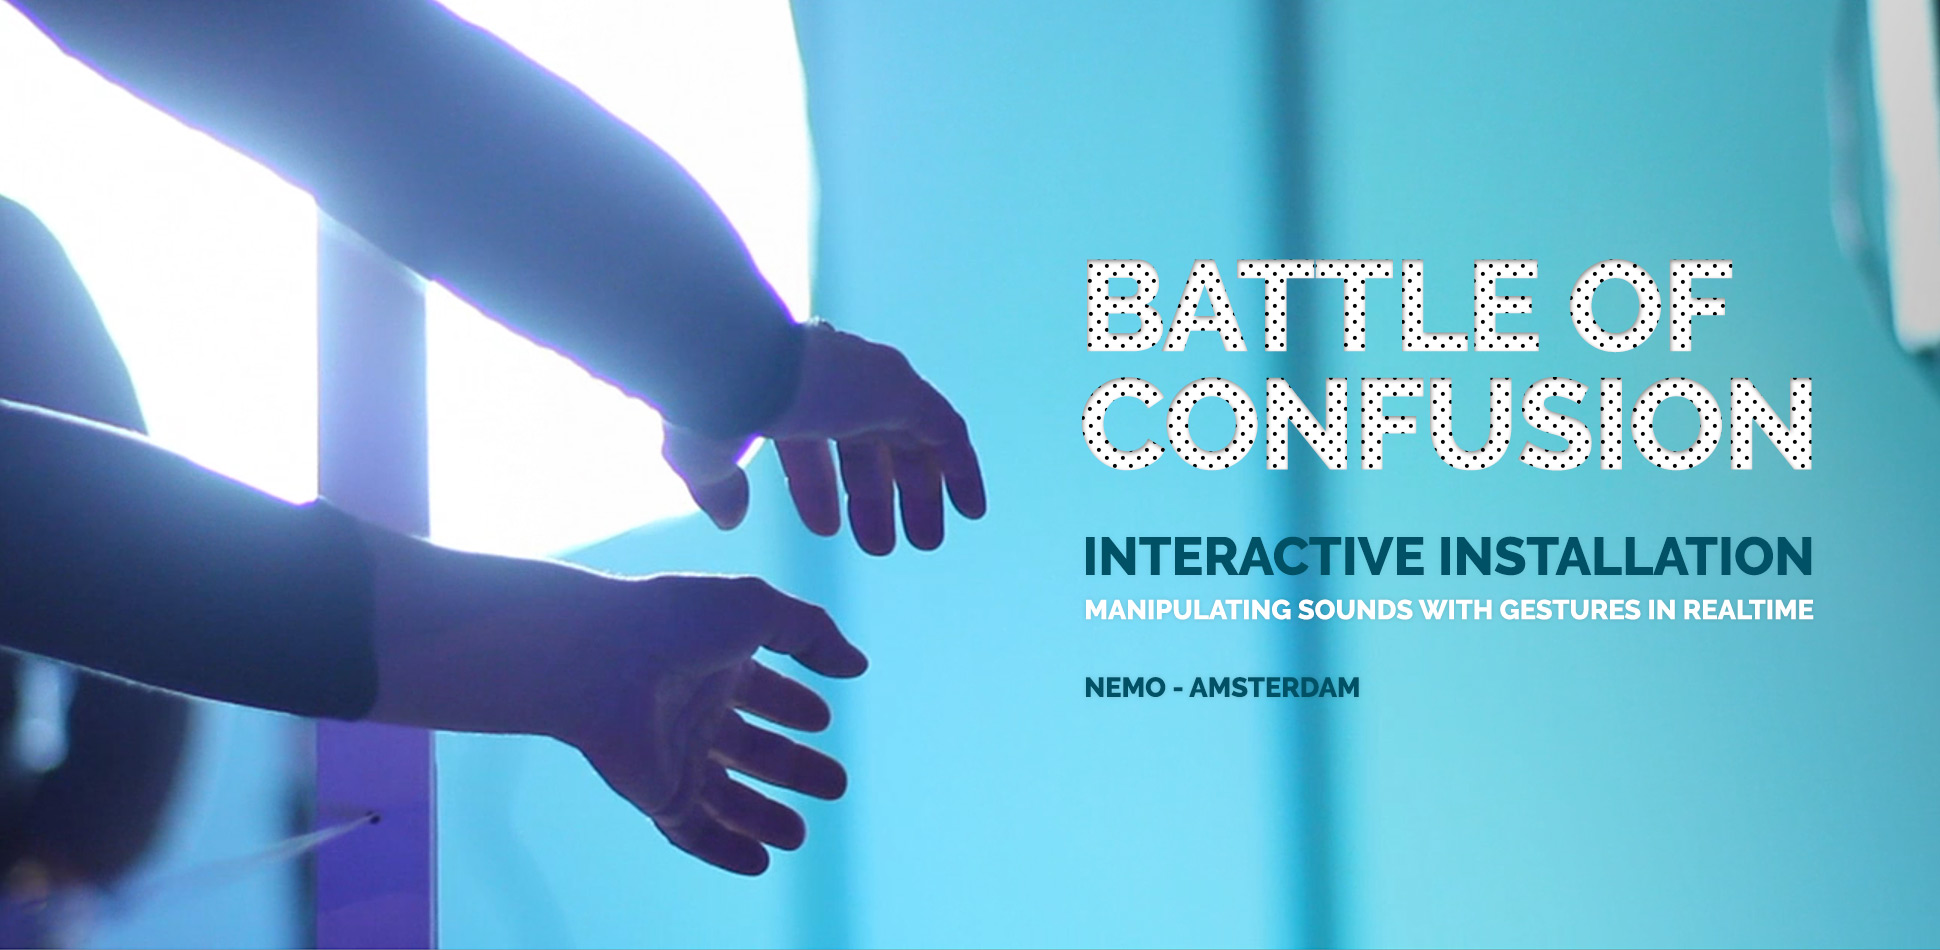 nothingblank-interactive-design-installation-sounds-gestures-real-time-header